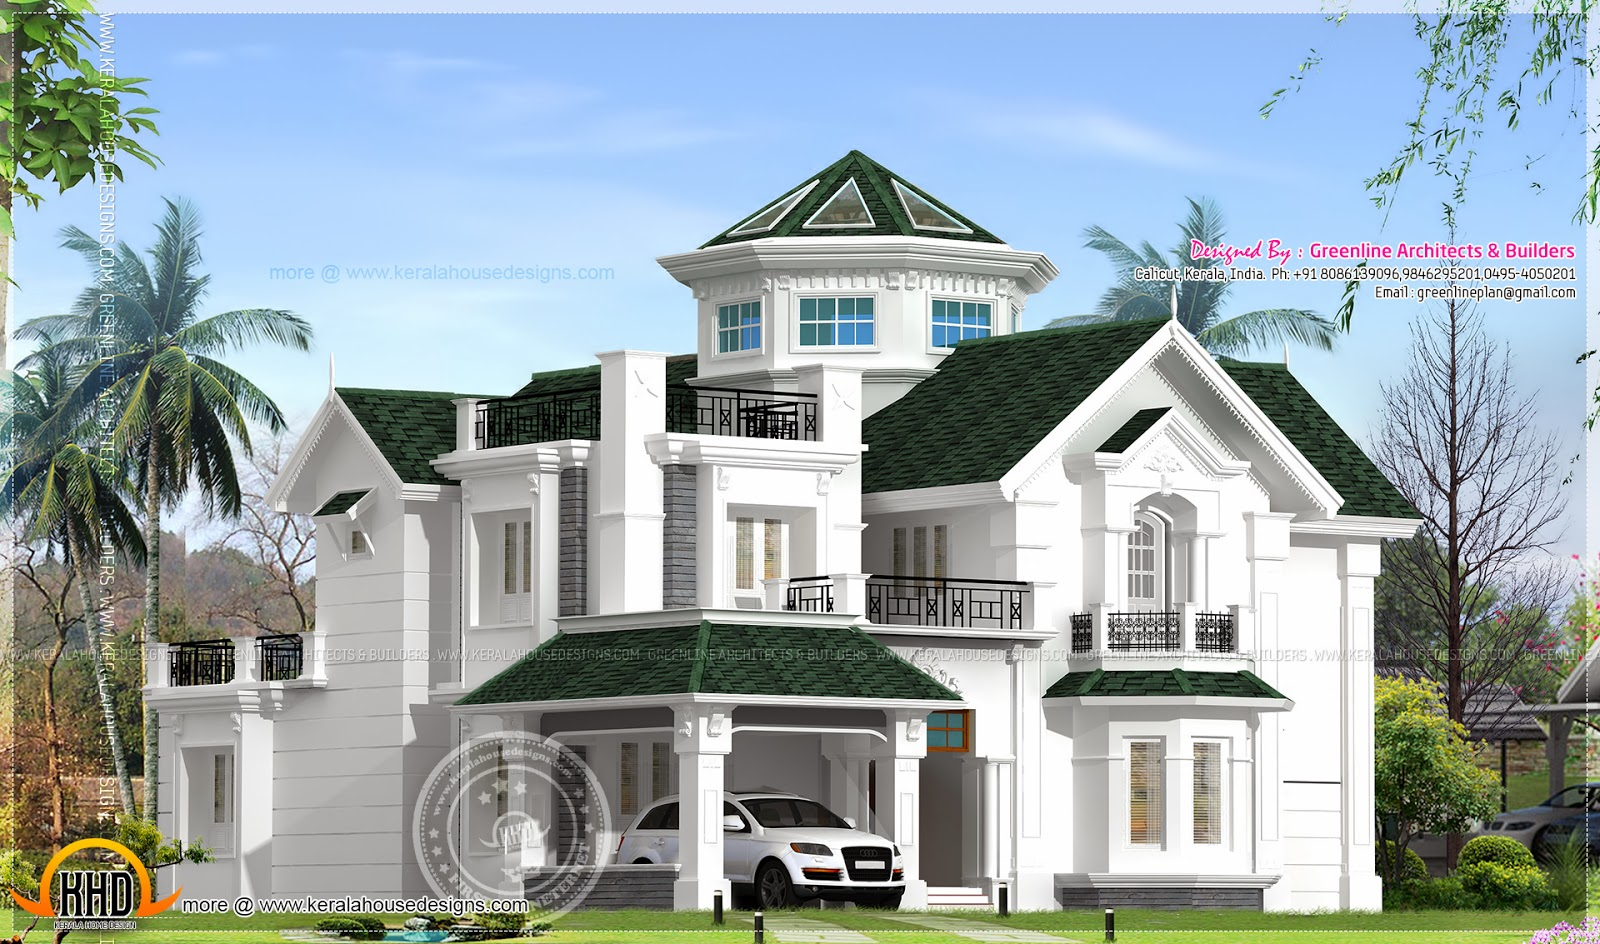 Colonial style house in kerala for New home designs brisbane